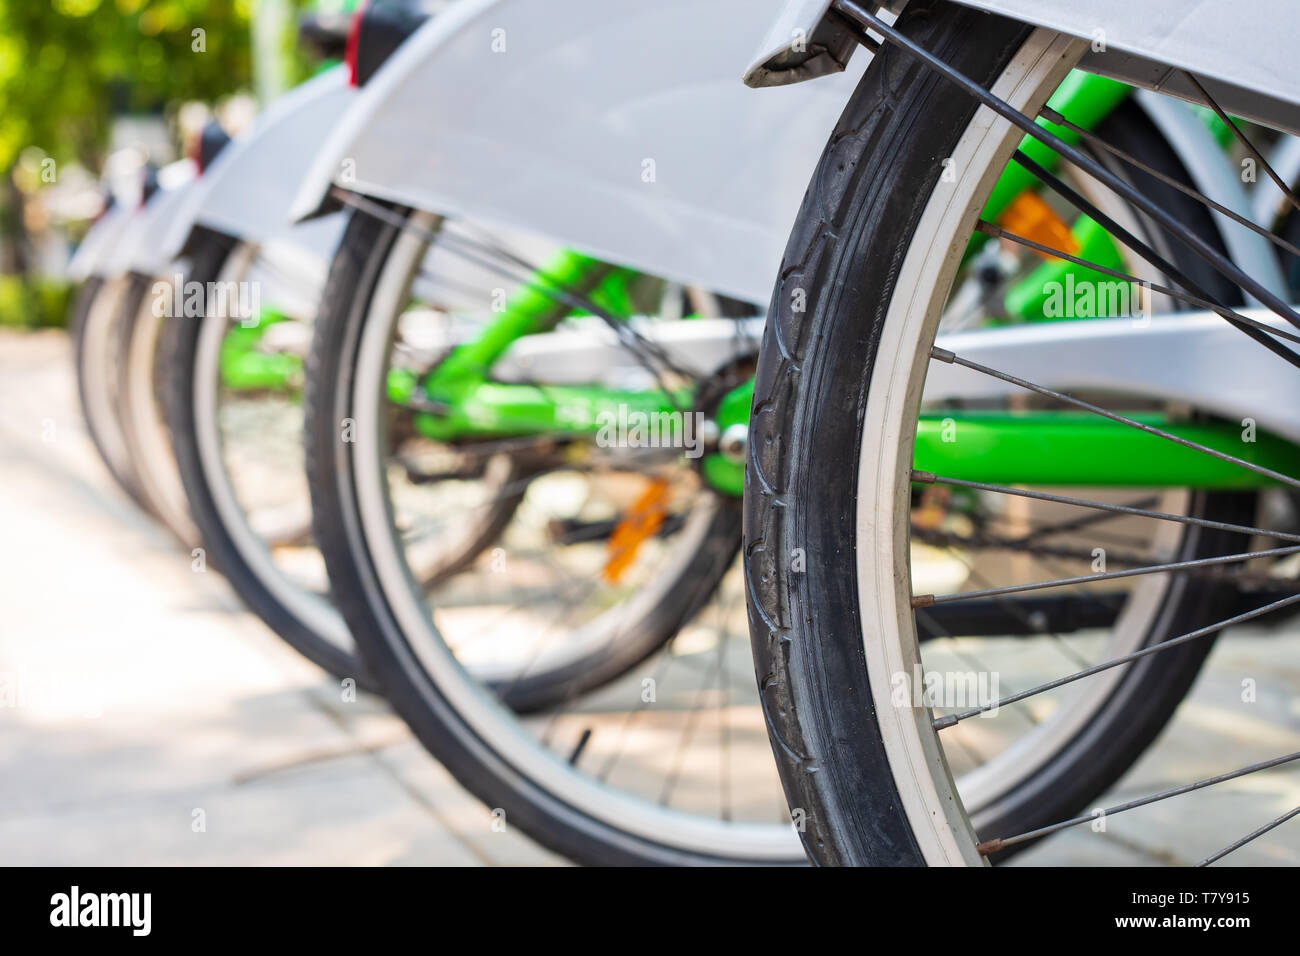 bicycle rack of the urban bike-sharing system in the city . - Stock Image